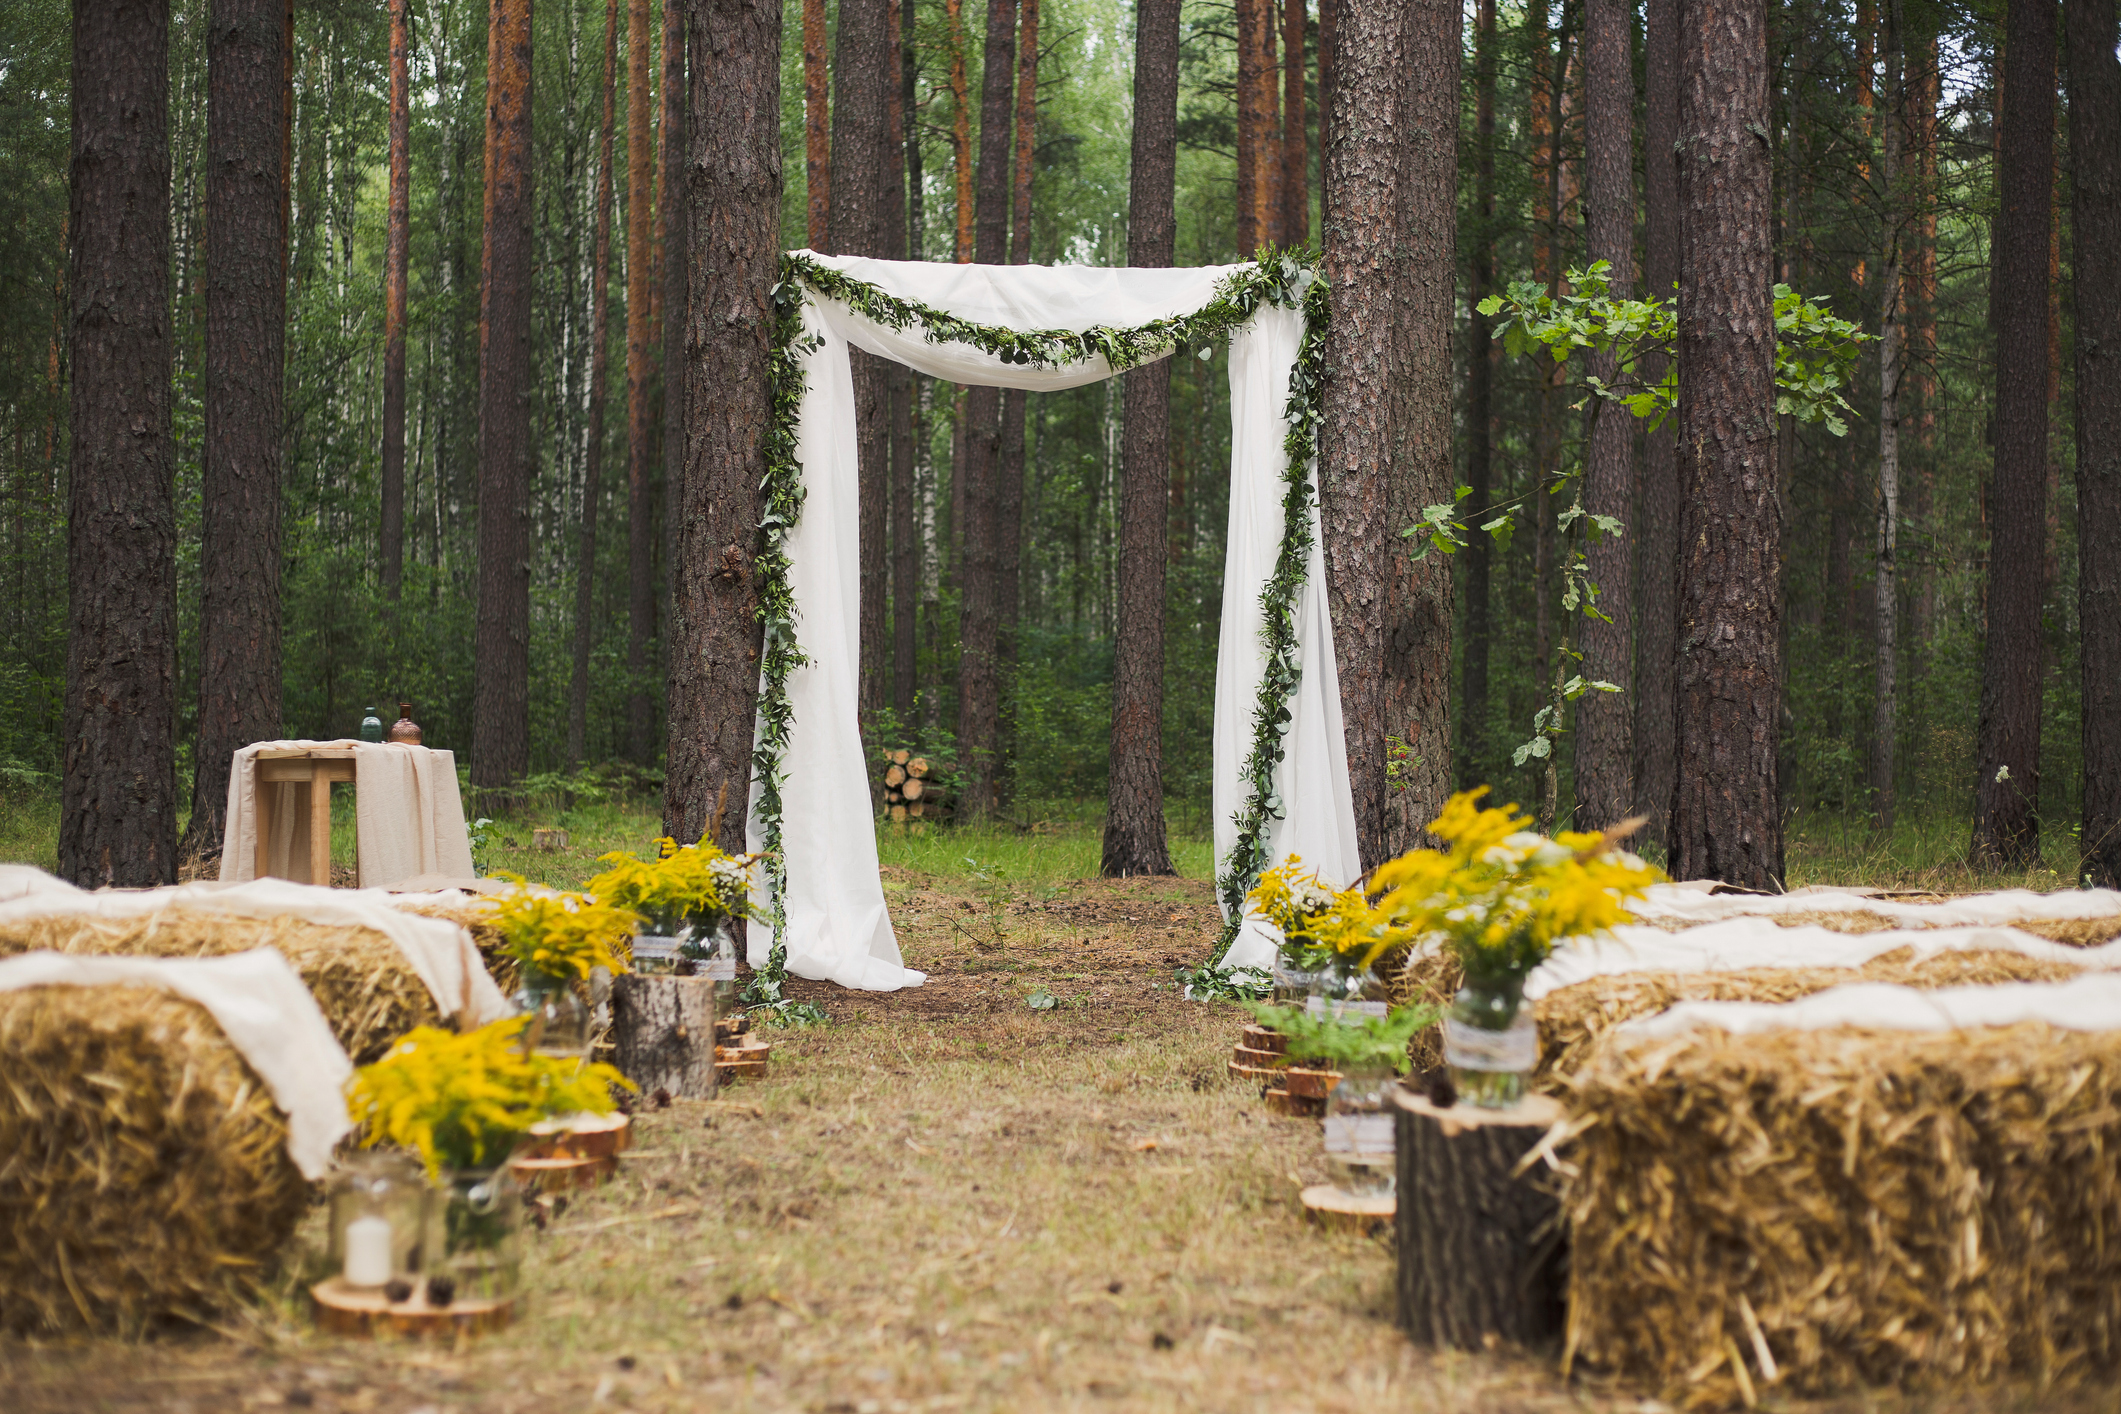 7 ways to have a more ethical and eco-friendly wedding day